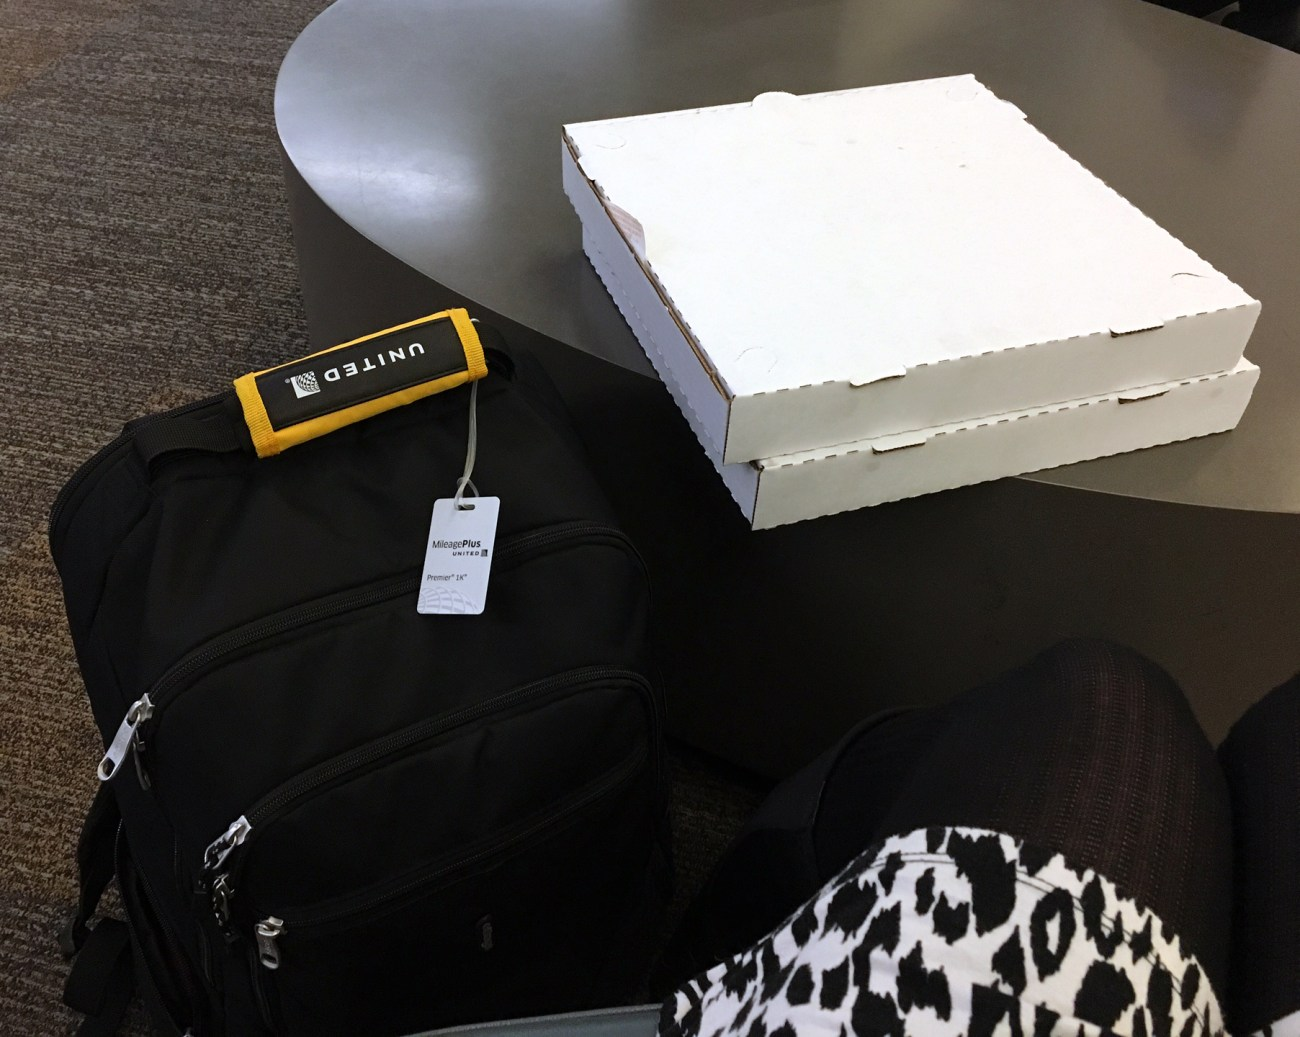 Tanja's carry-on bags, including gluten-free pizza // Our Next Life